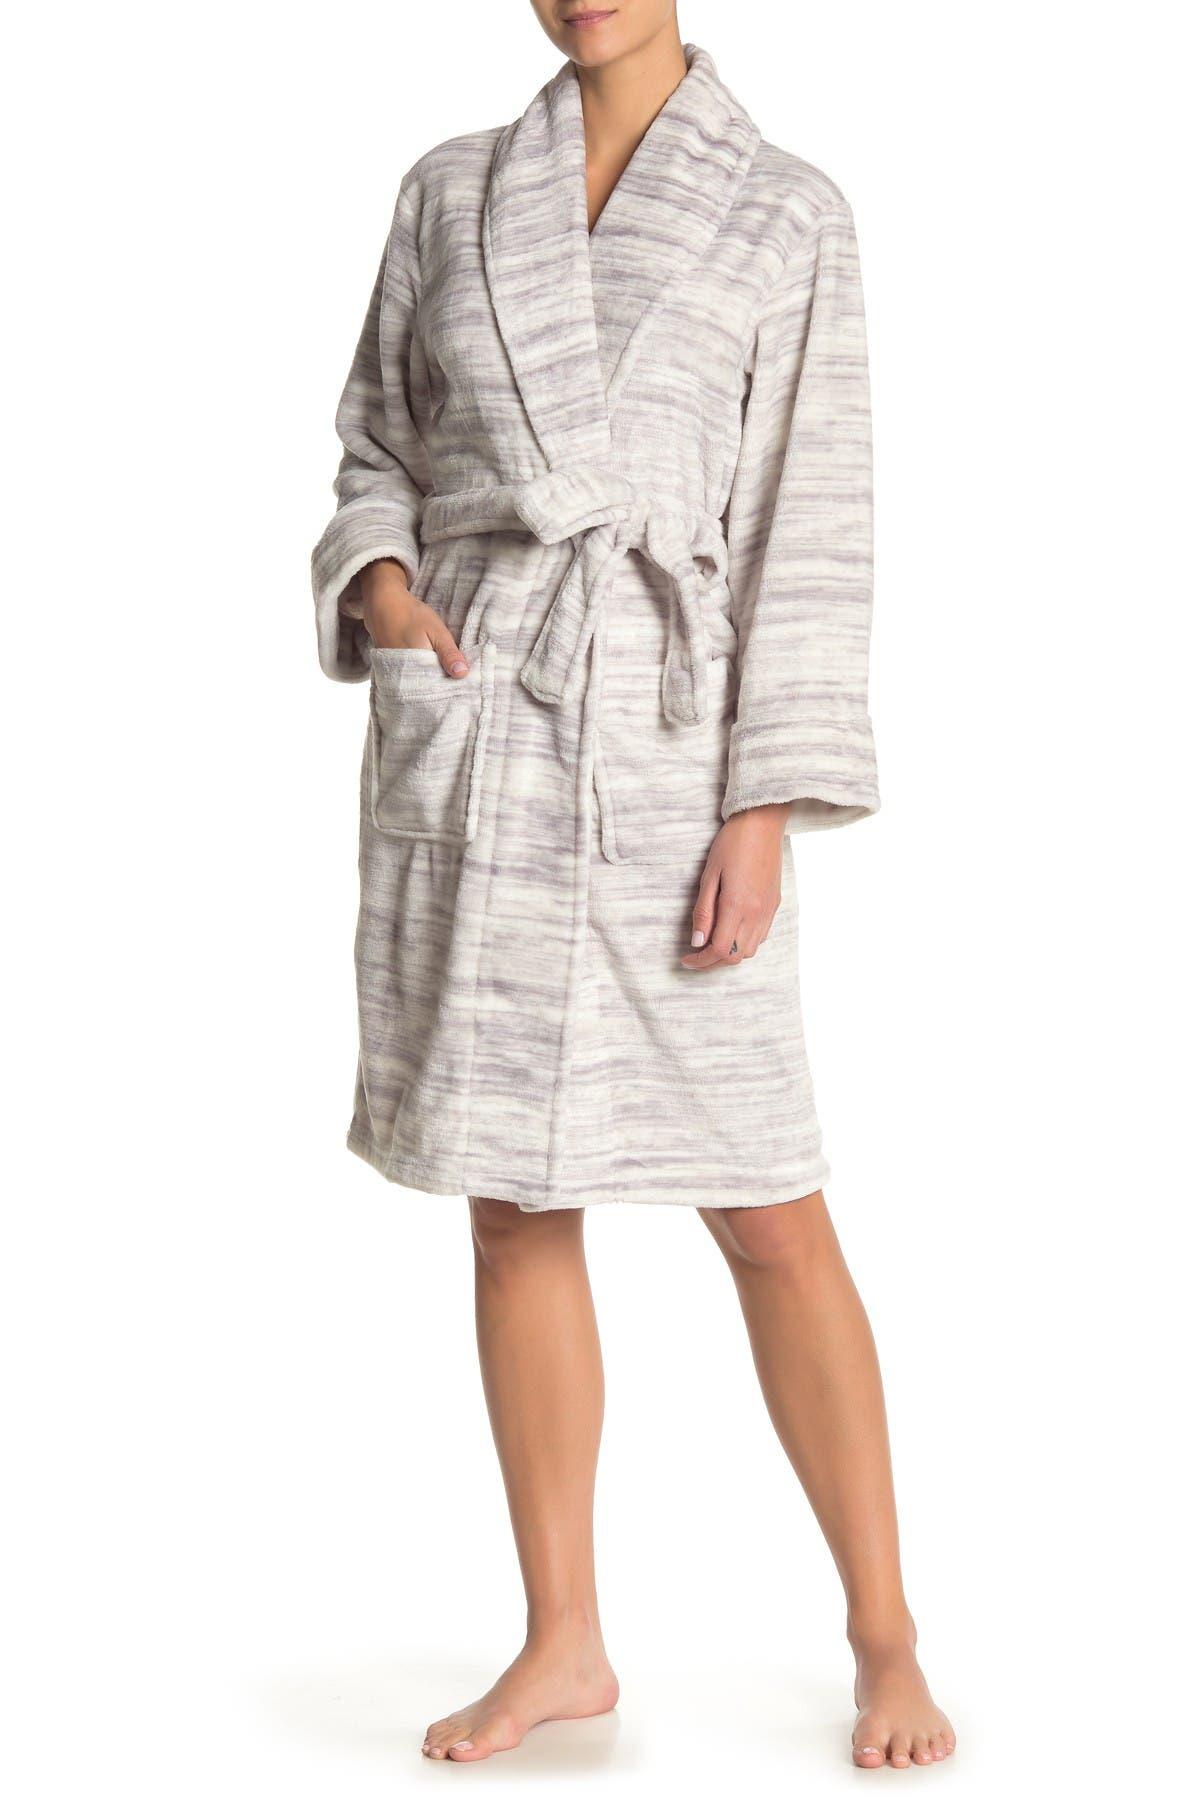 Image of Daniel Buchler Space Dye Faux Fur Robe